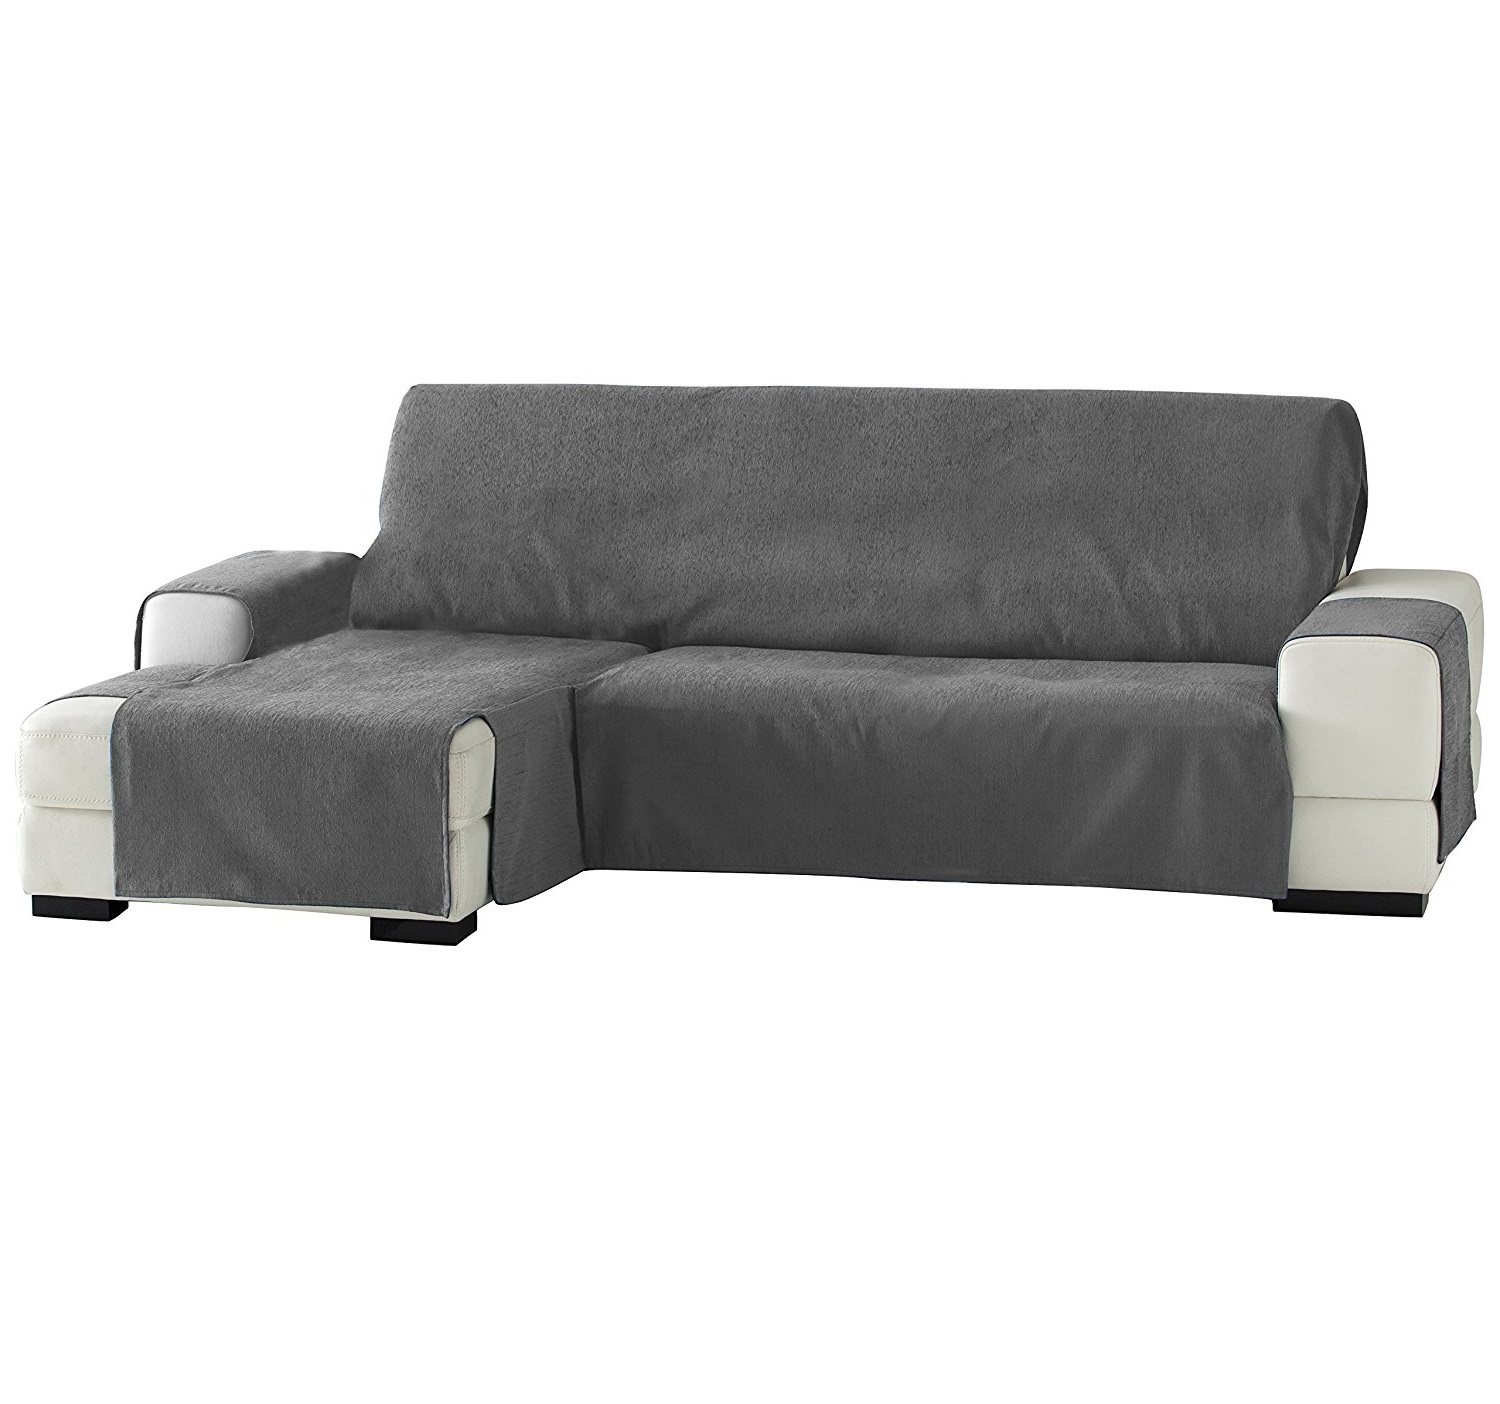 Fundas para sofa cheslong cool stunning funda sof chaise - Funda para cheslong ...